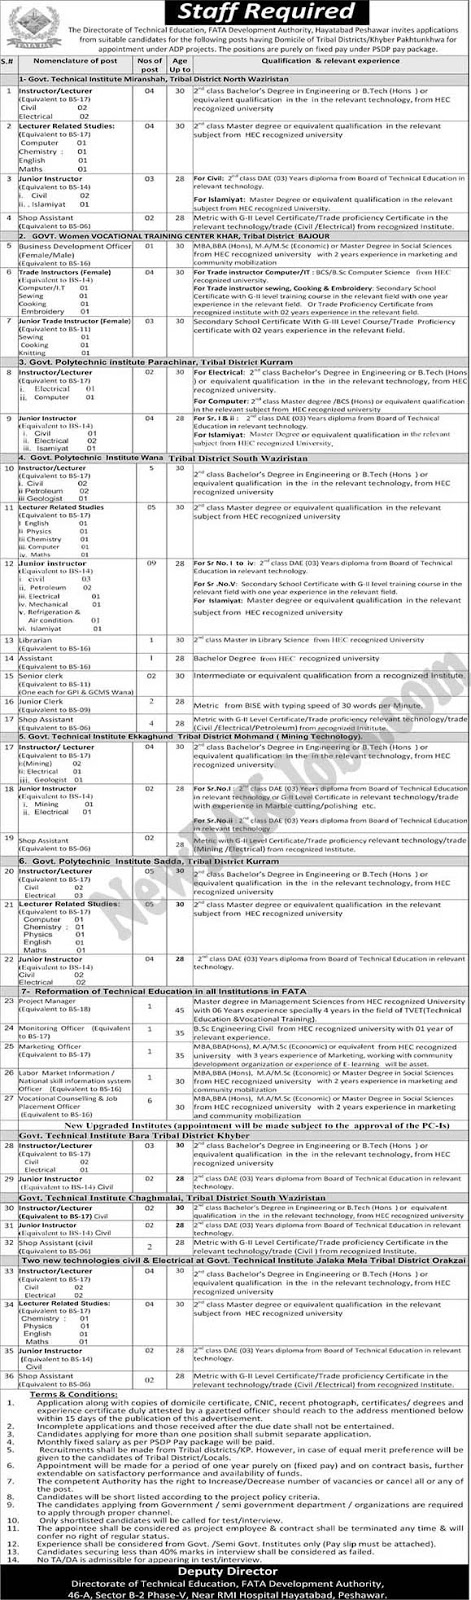 Staff required in FATA Development Authority 2018 (100+ Vacancies)